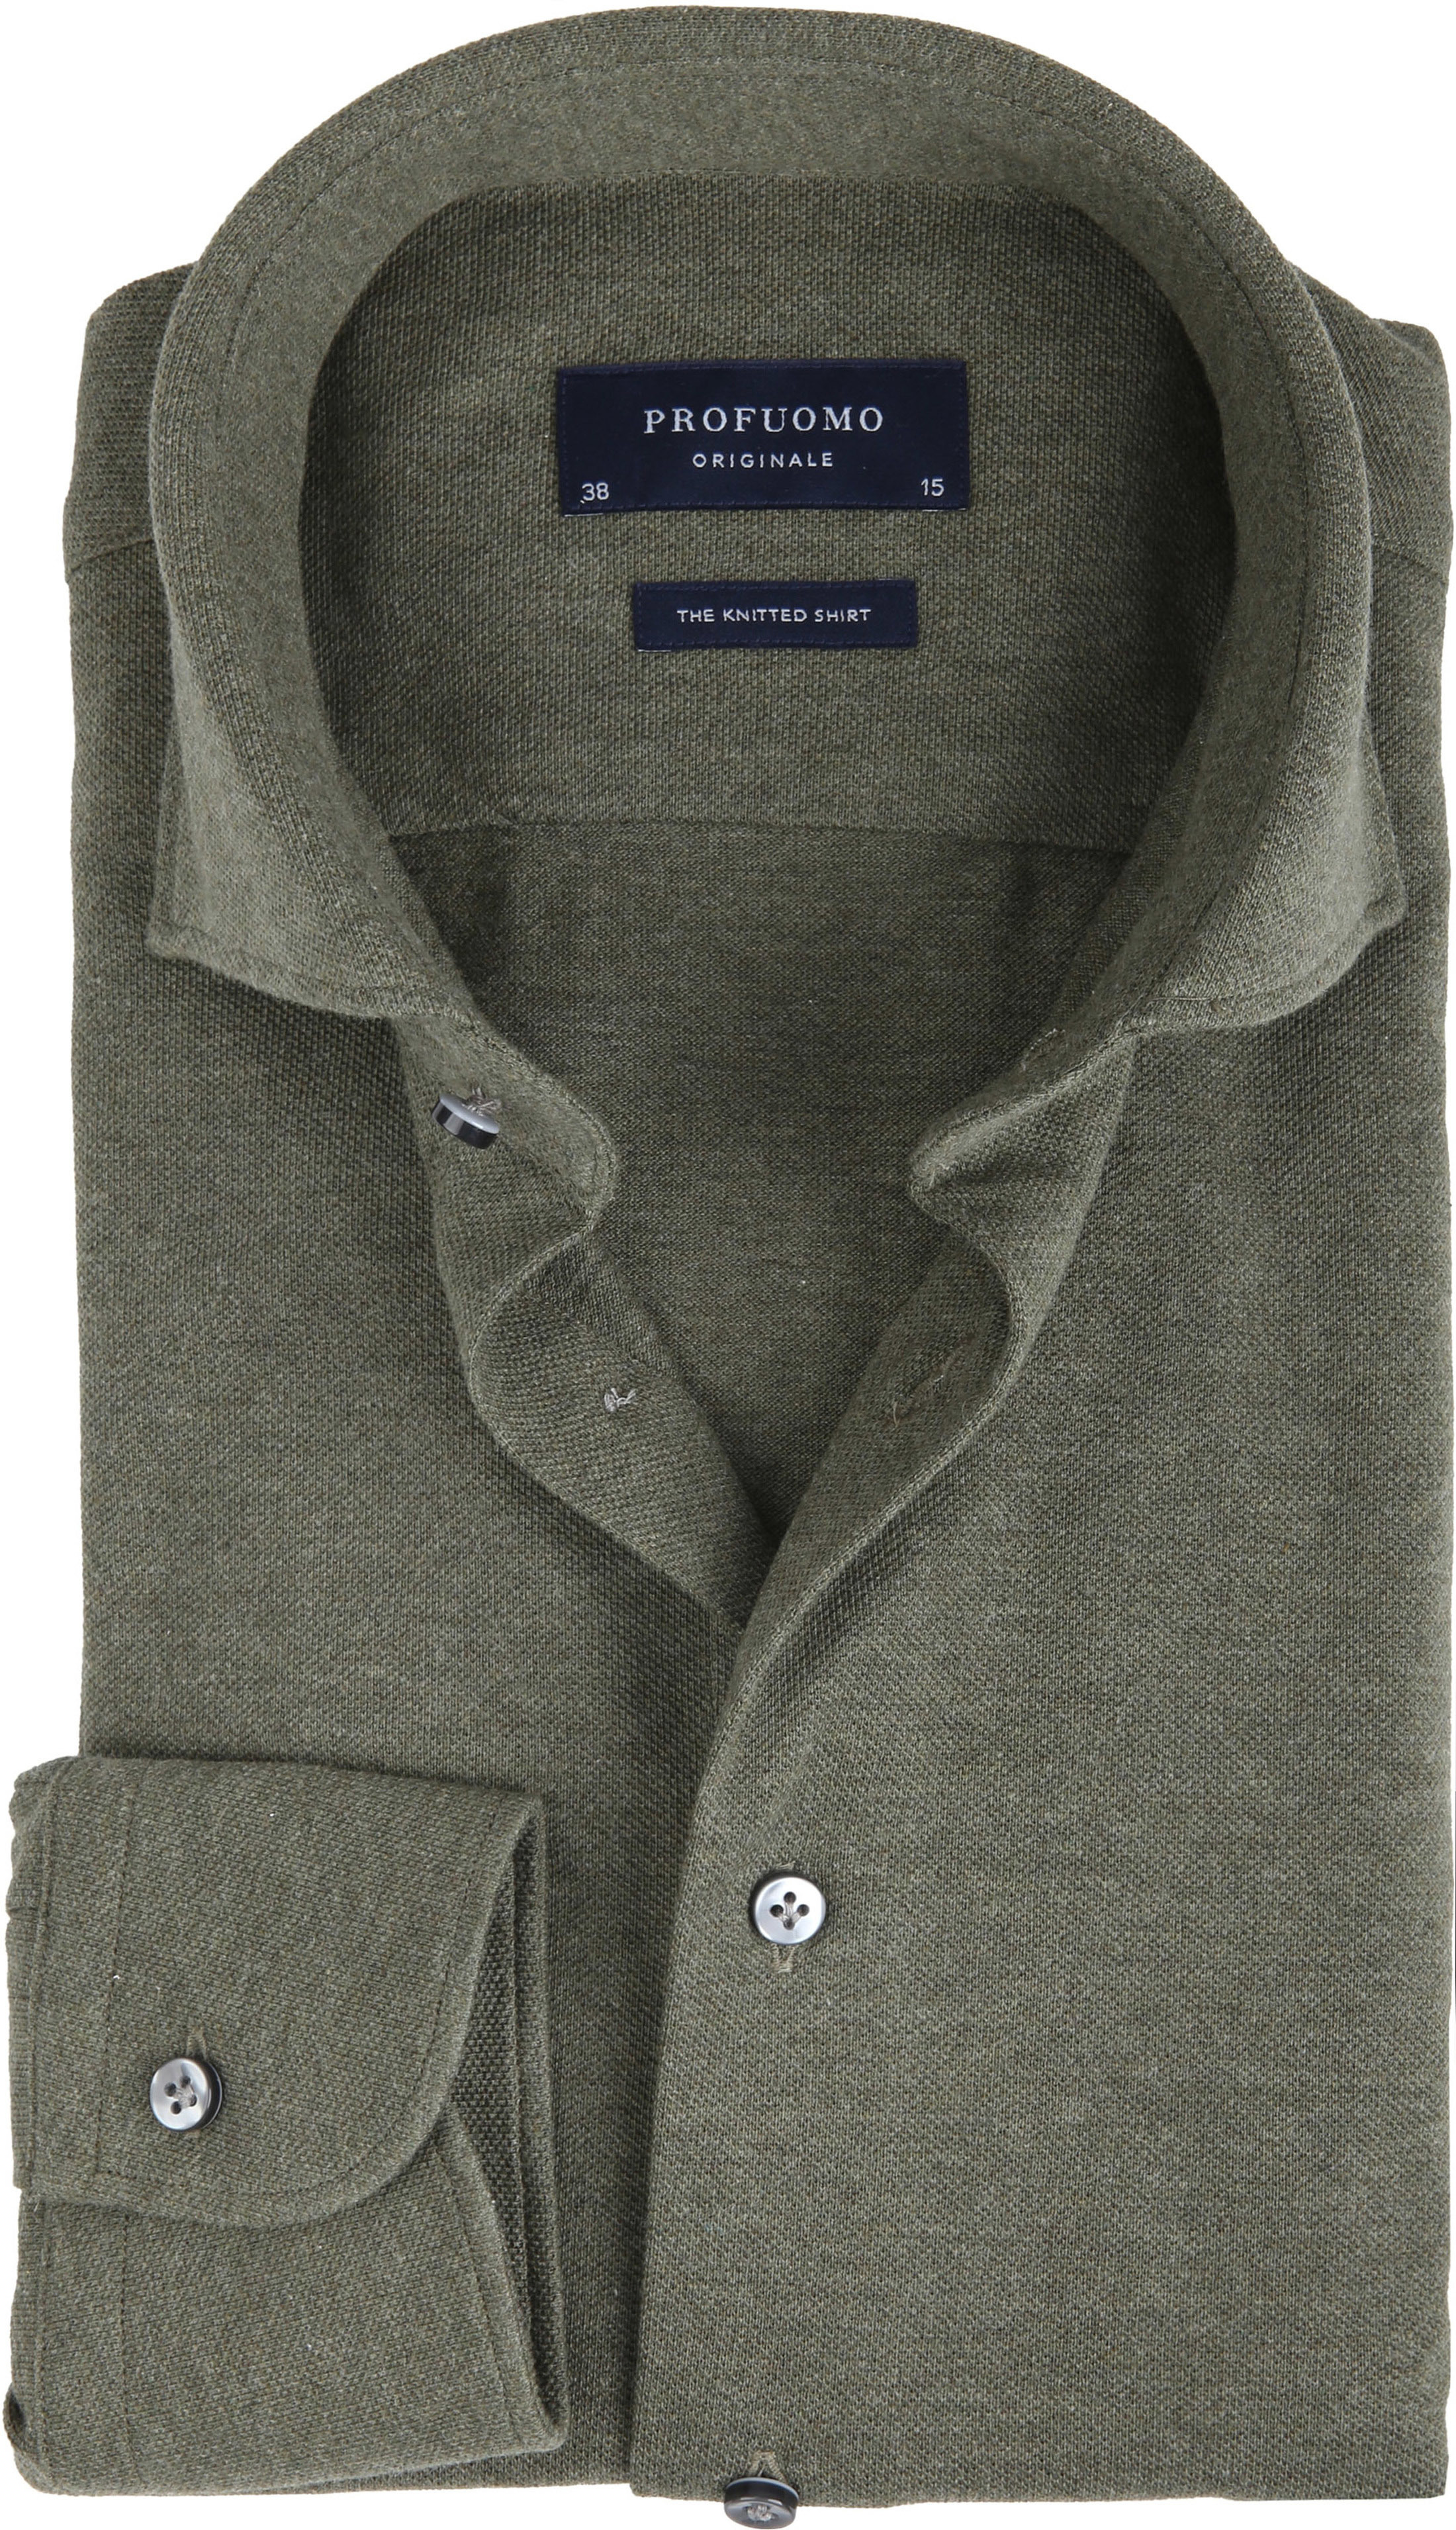 Profuomo Shirt Knitted Green